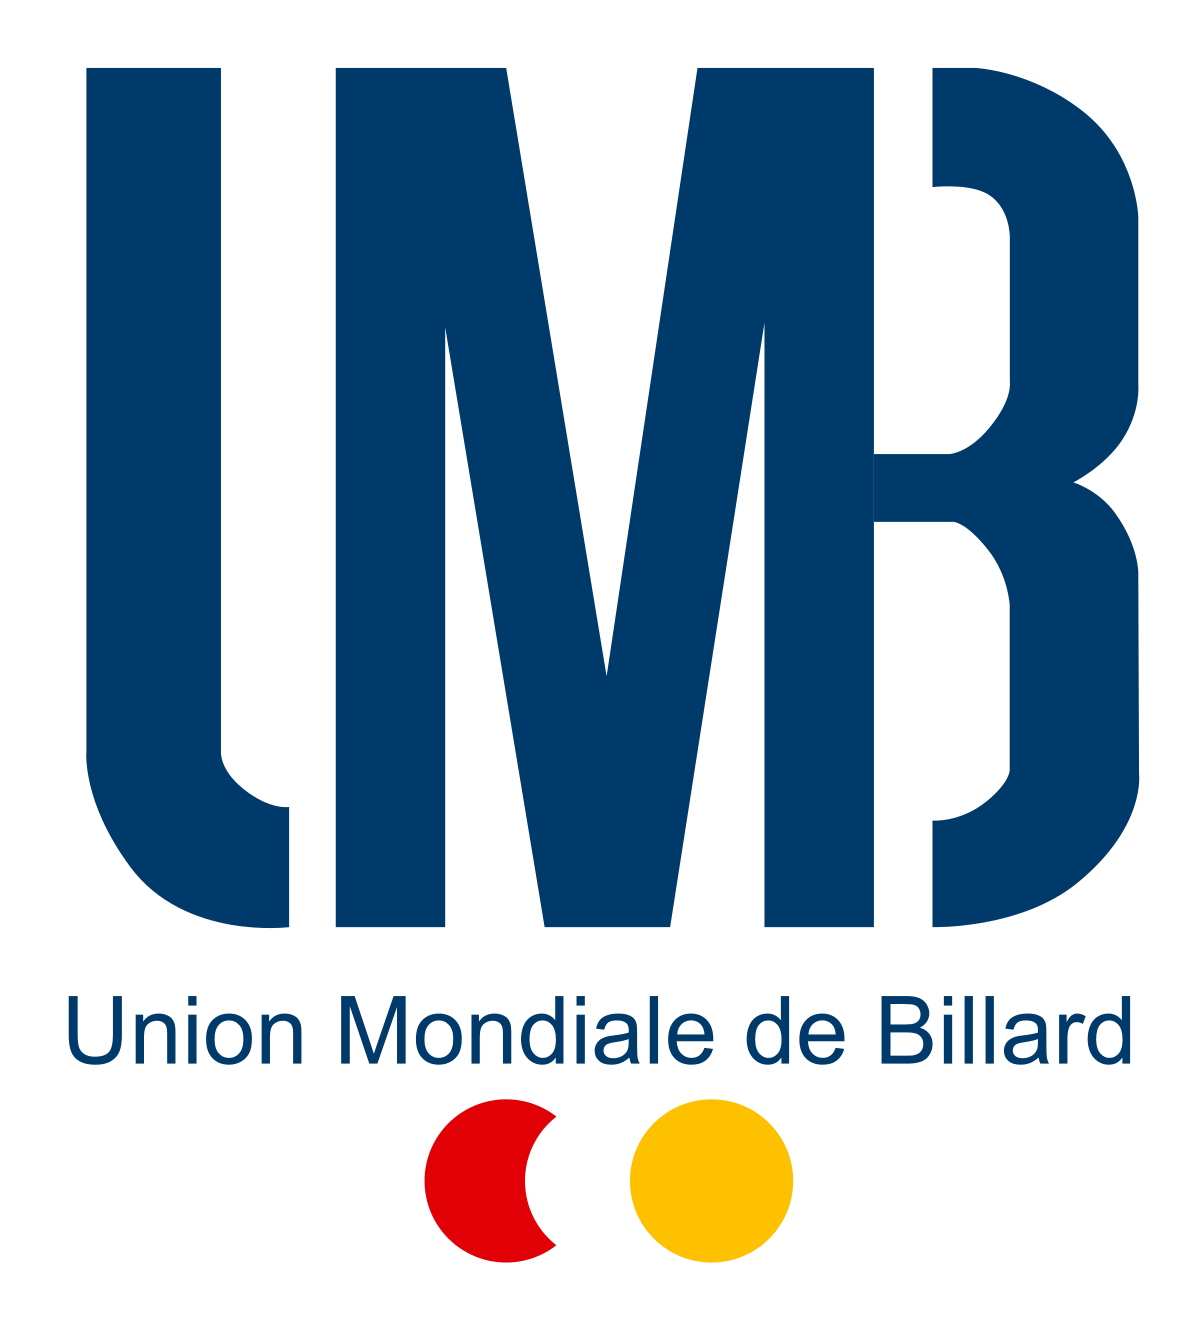 Union Modiale de Billard